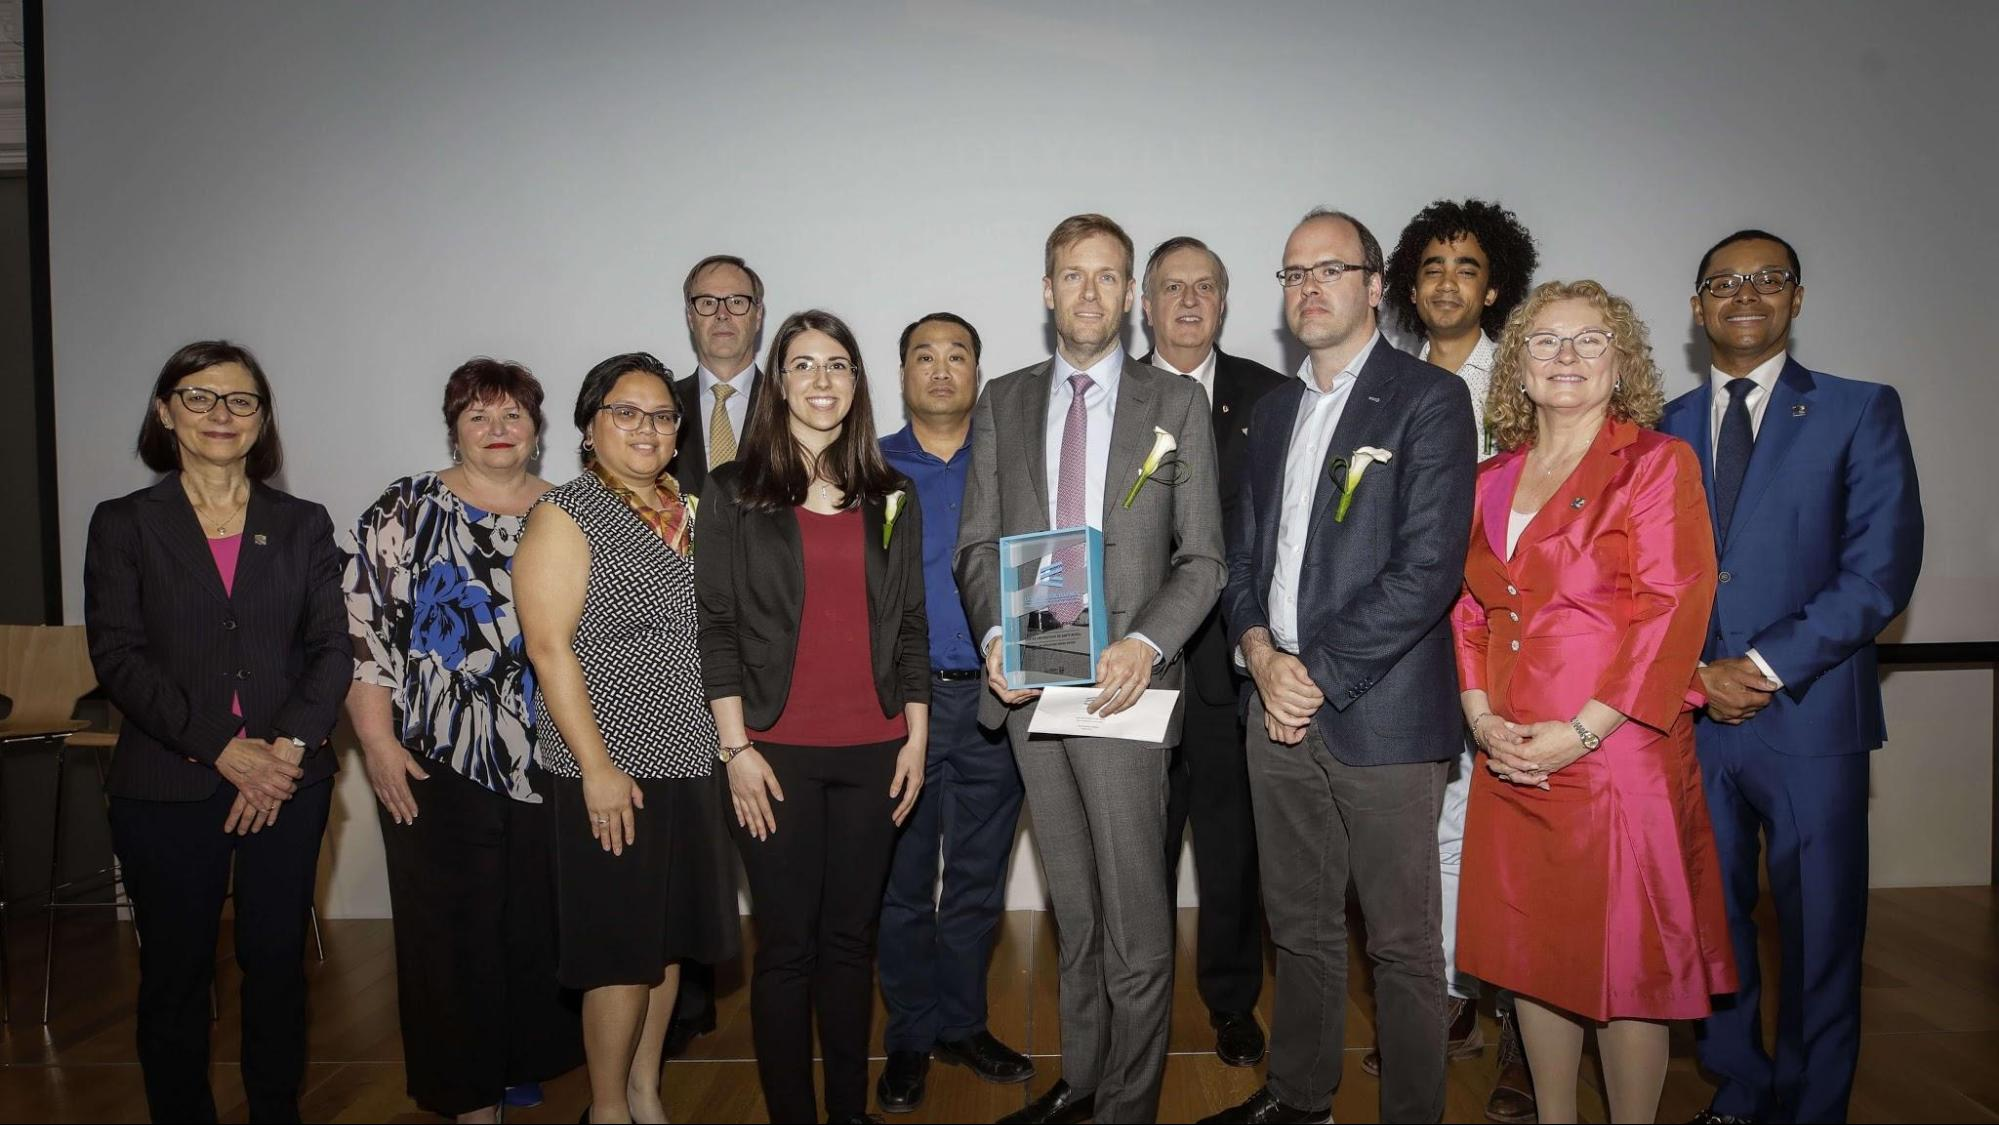 Opal wins top healthcare award in Quebec Prix d'excellence awards gala